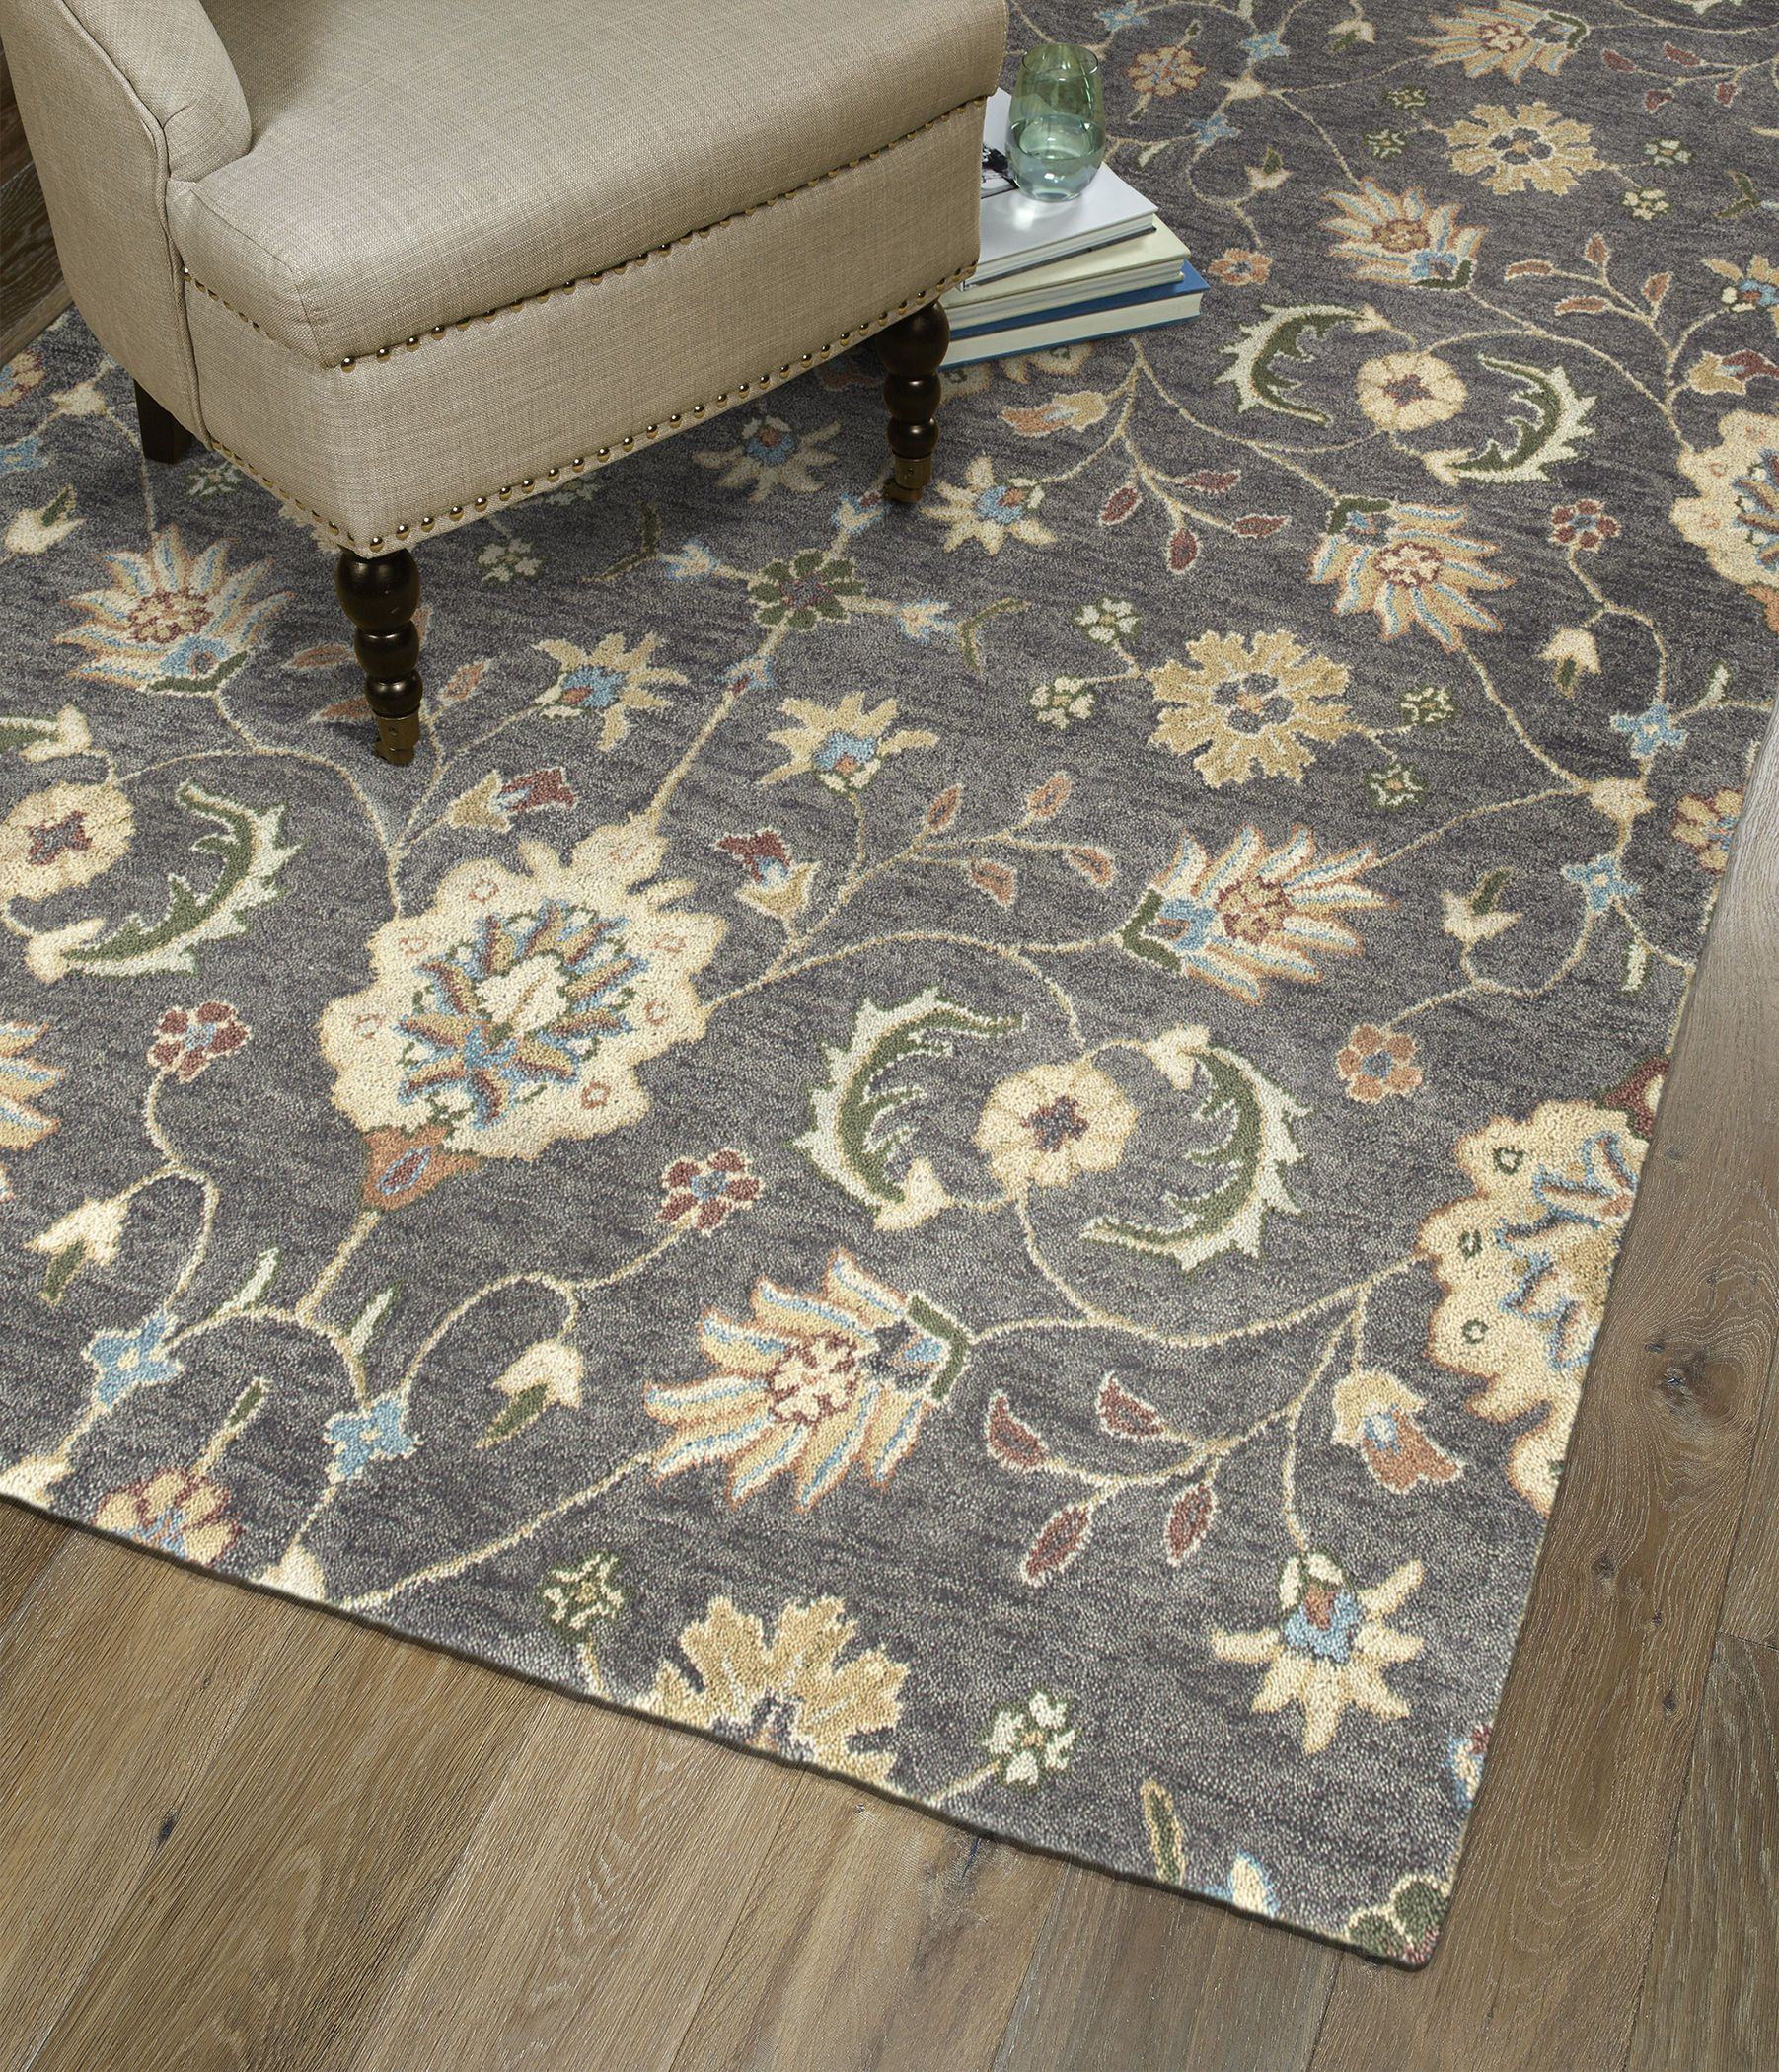 3201 Rug Color Pewter Size 10 X 14 In 2020 Colorful Rugs Rugs Area Rugs